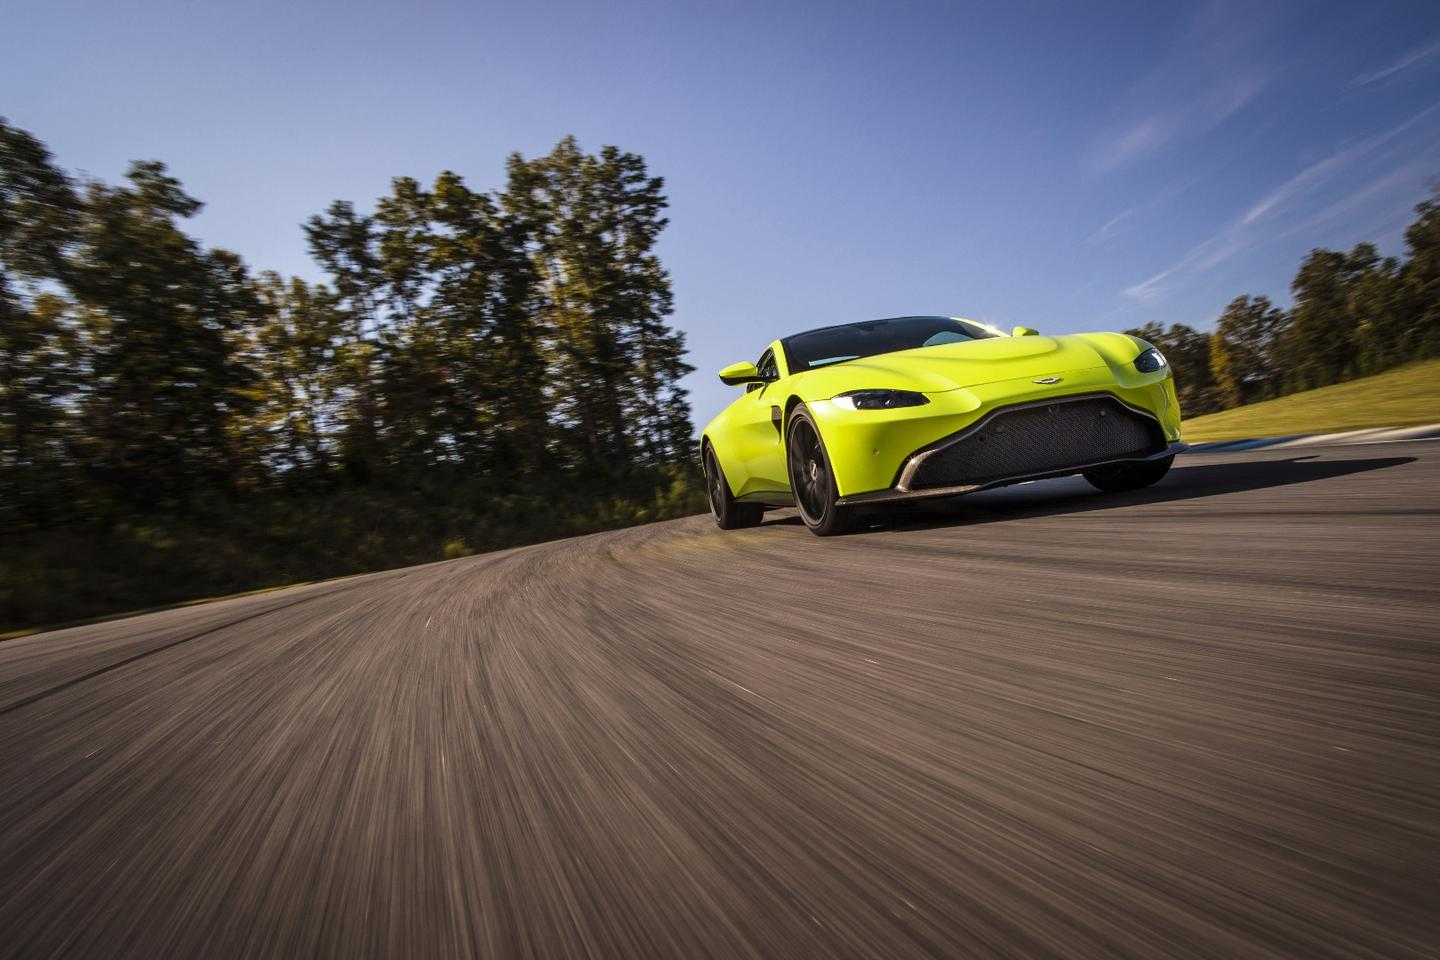 2018 Aston Martin Vantage: electronic differential can lock and unlock in milliseconds, adding to high speed confidence and agility